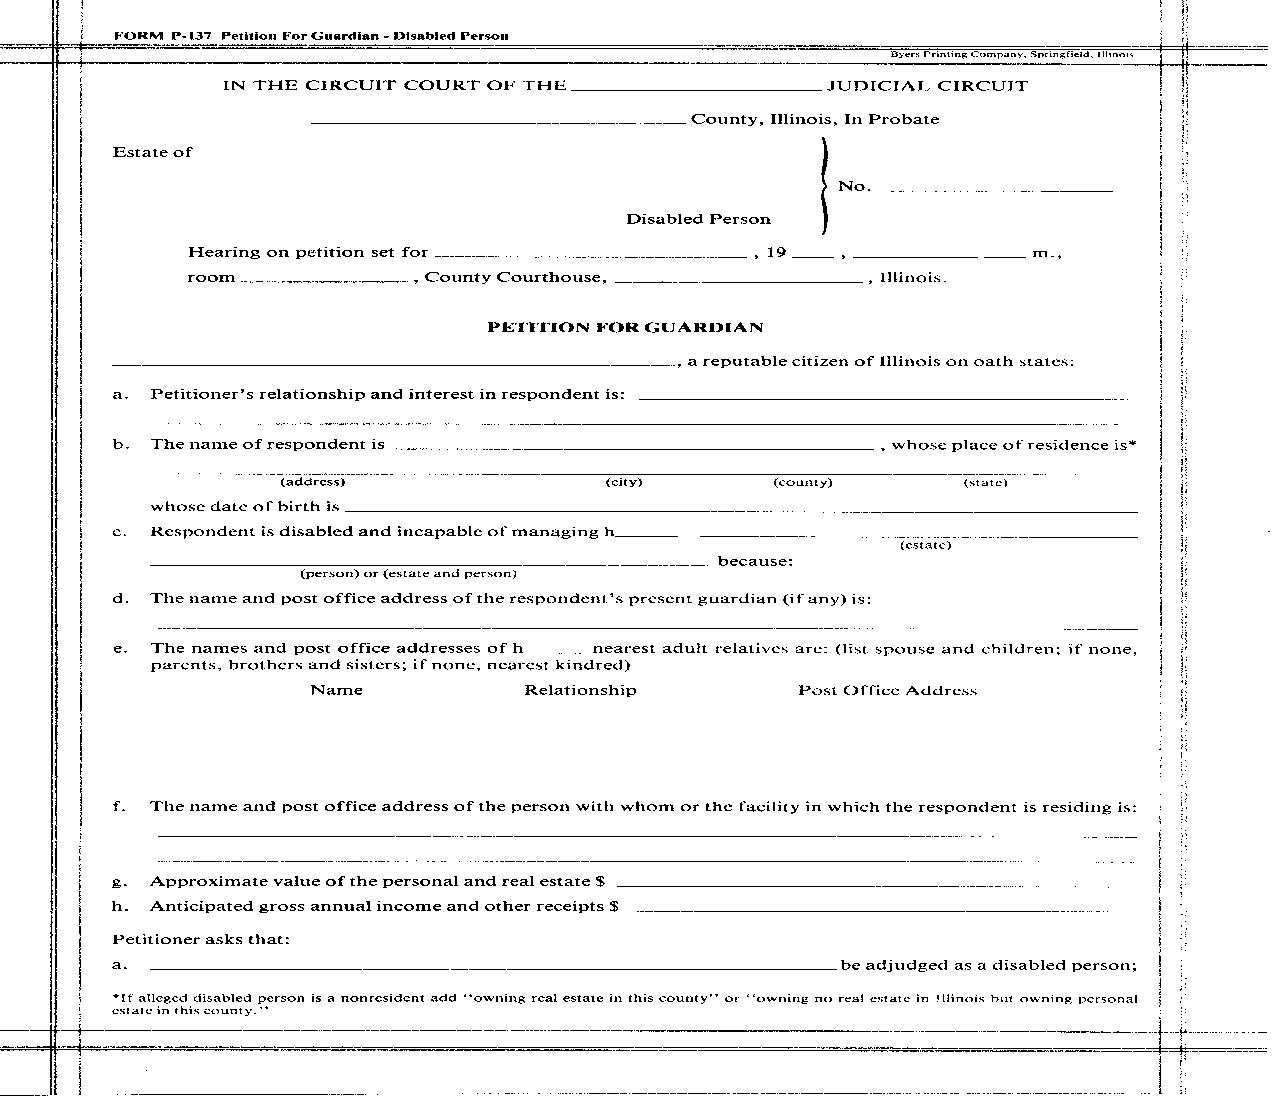 Petition For Guardian (Disabled Person) {P-137} | Pdf Fpdf Doc Docx | Illinois